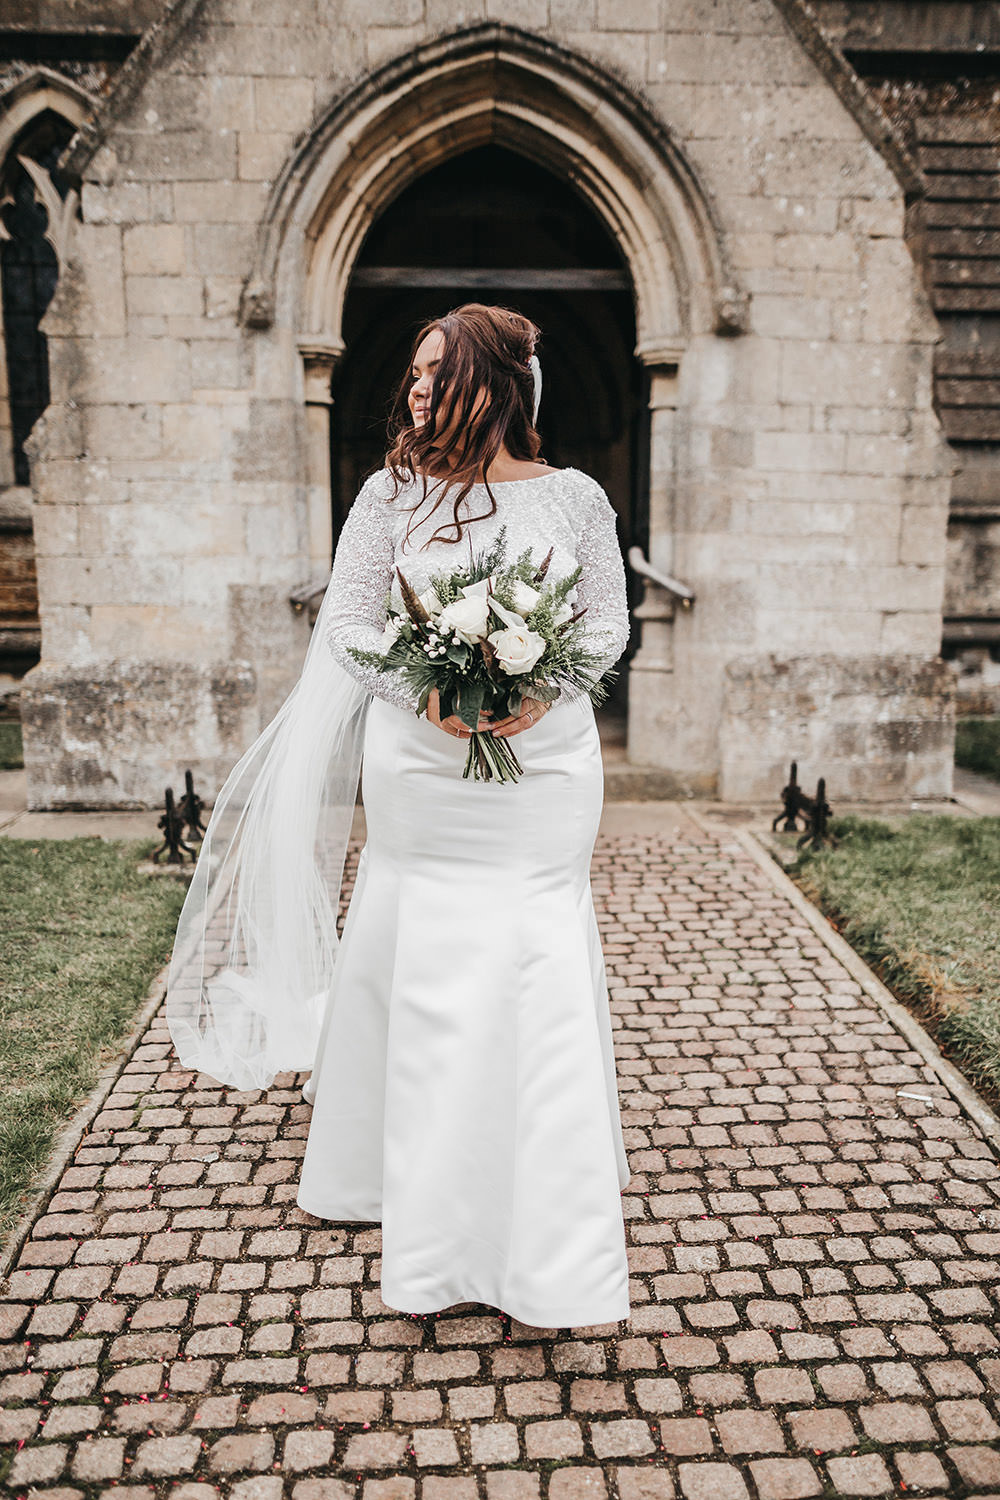 Bride Bridal Separates Sparkly Long Sleeve Fish Tail Button Back Veil Big Barn Wedding Ashley The Vedrines Photography